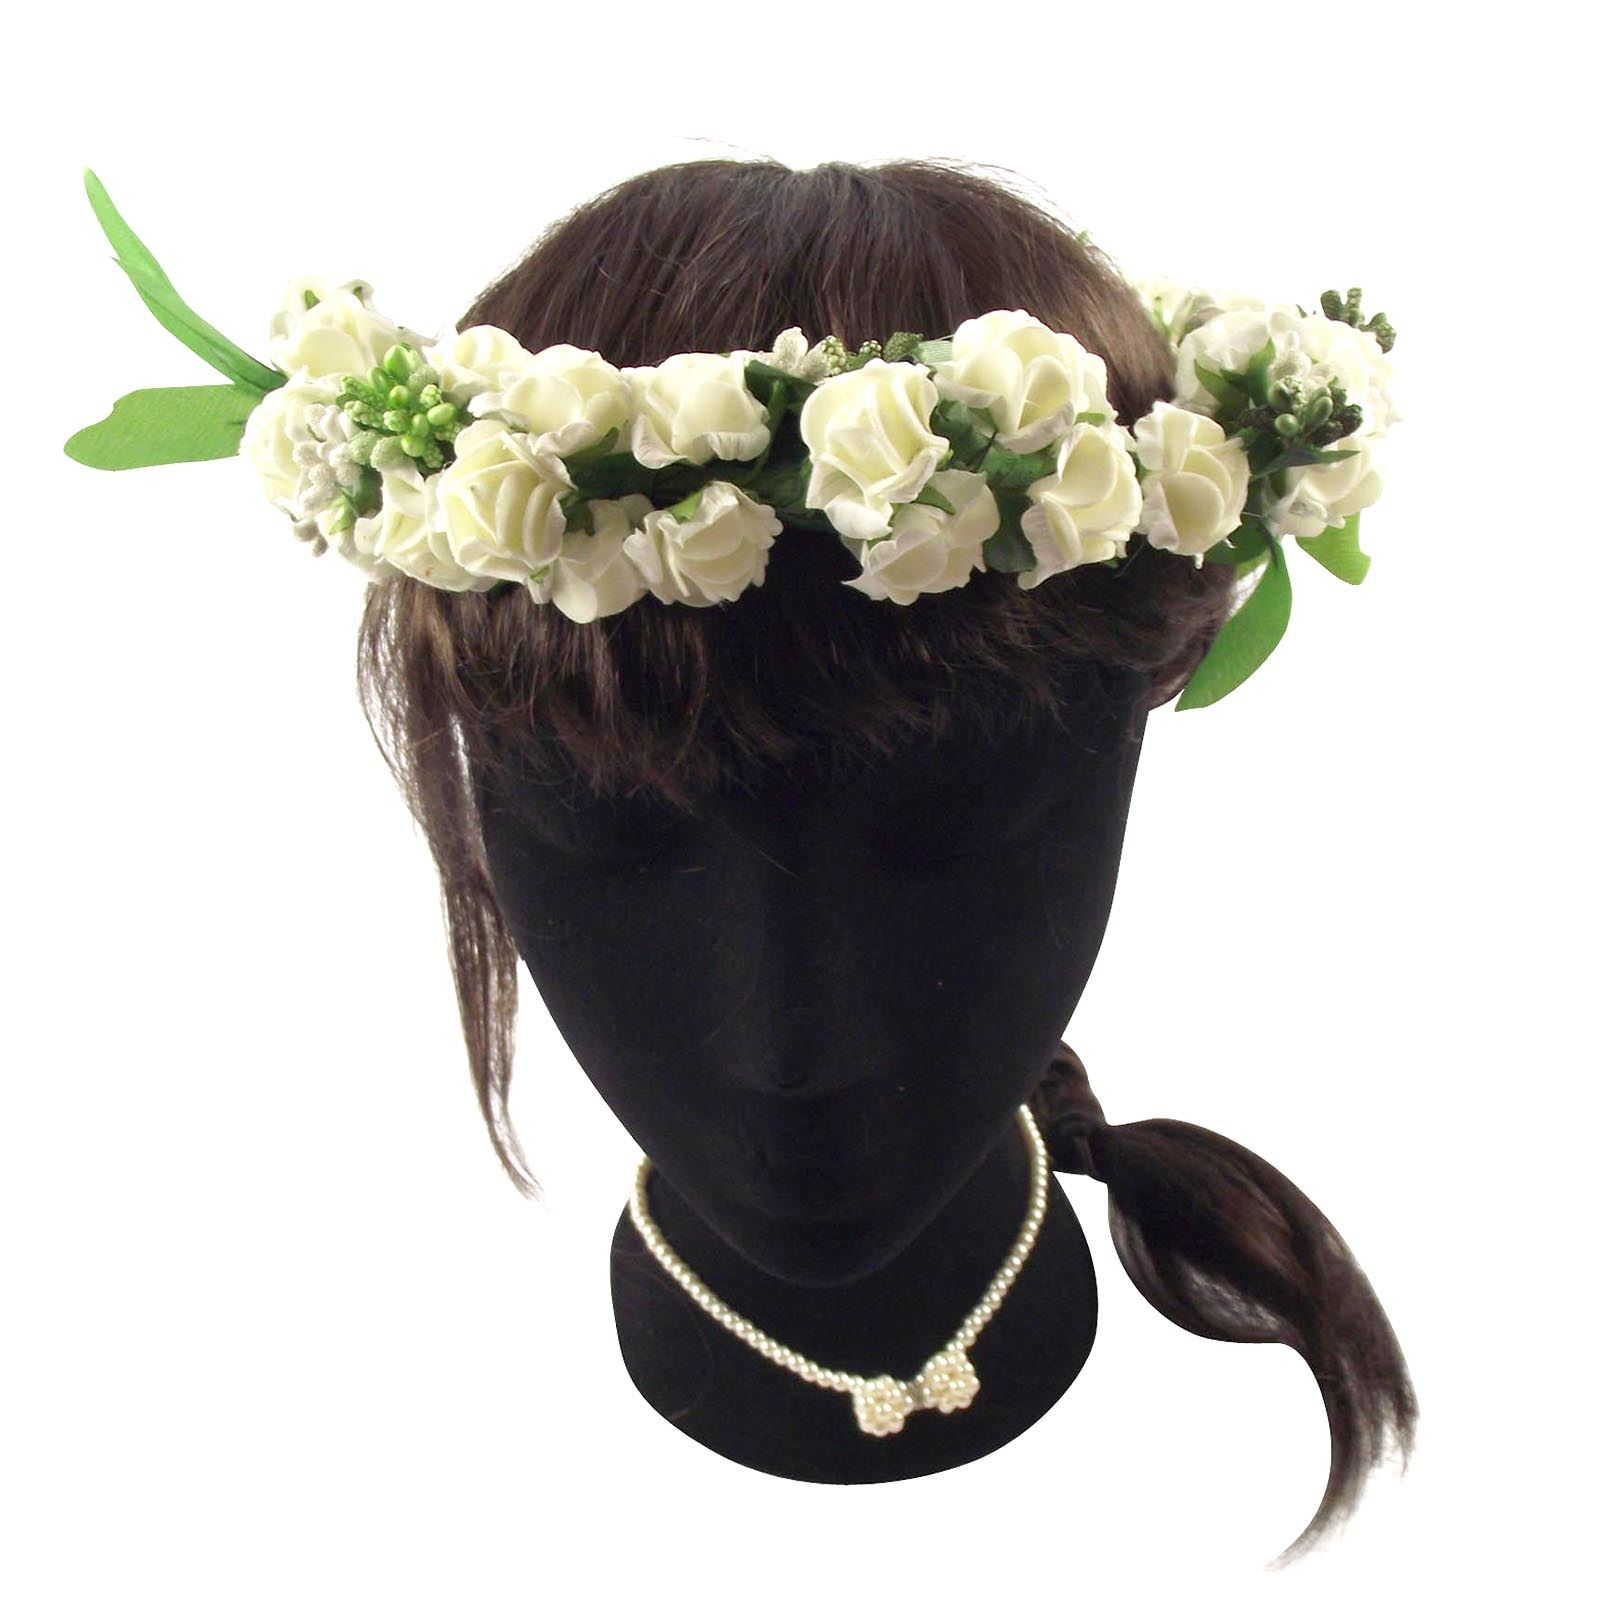 Soft Foam Artificial Flower Crown Festival Head Wear Floral Hair